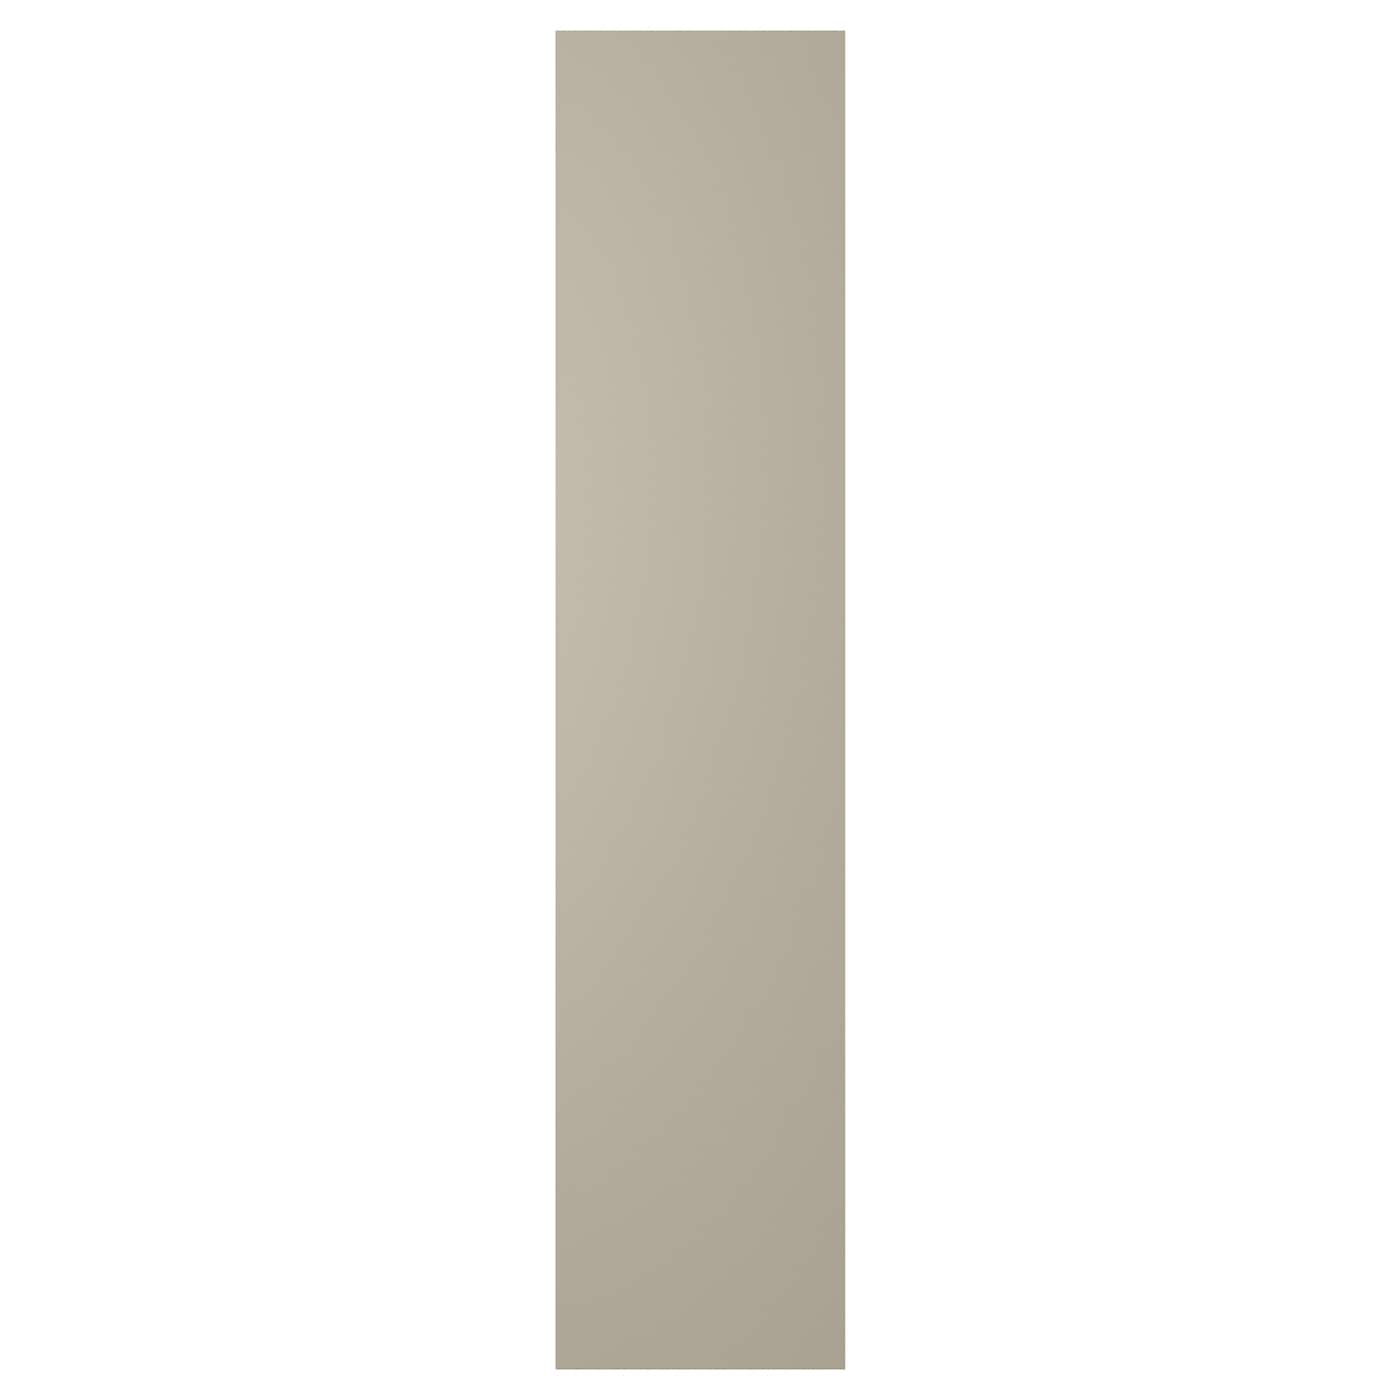 IKEA FORSAND door 10 year guarantee. Read about the terms in the guarantee brochure.